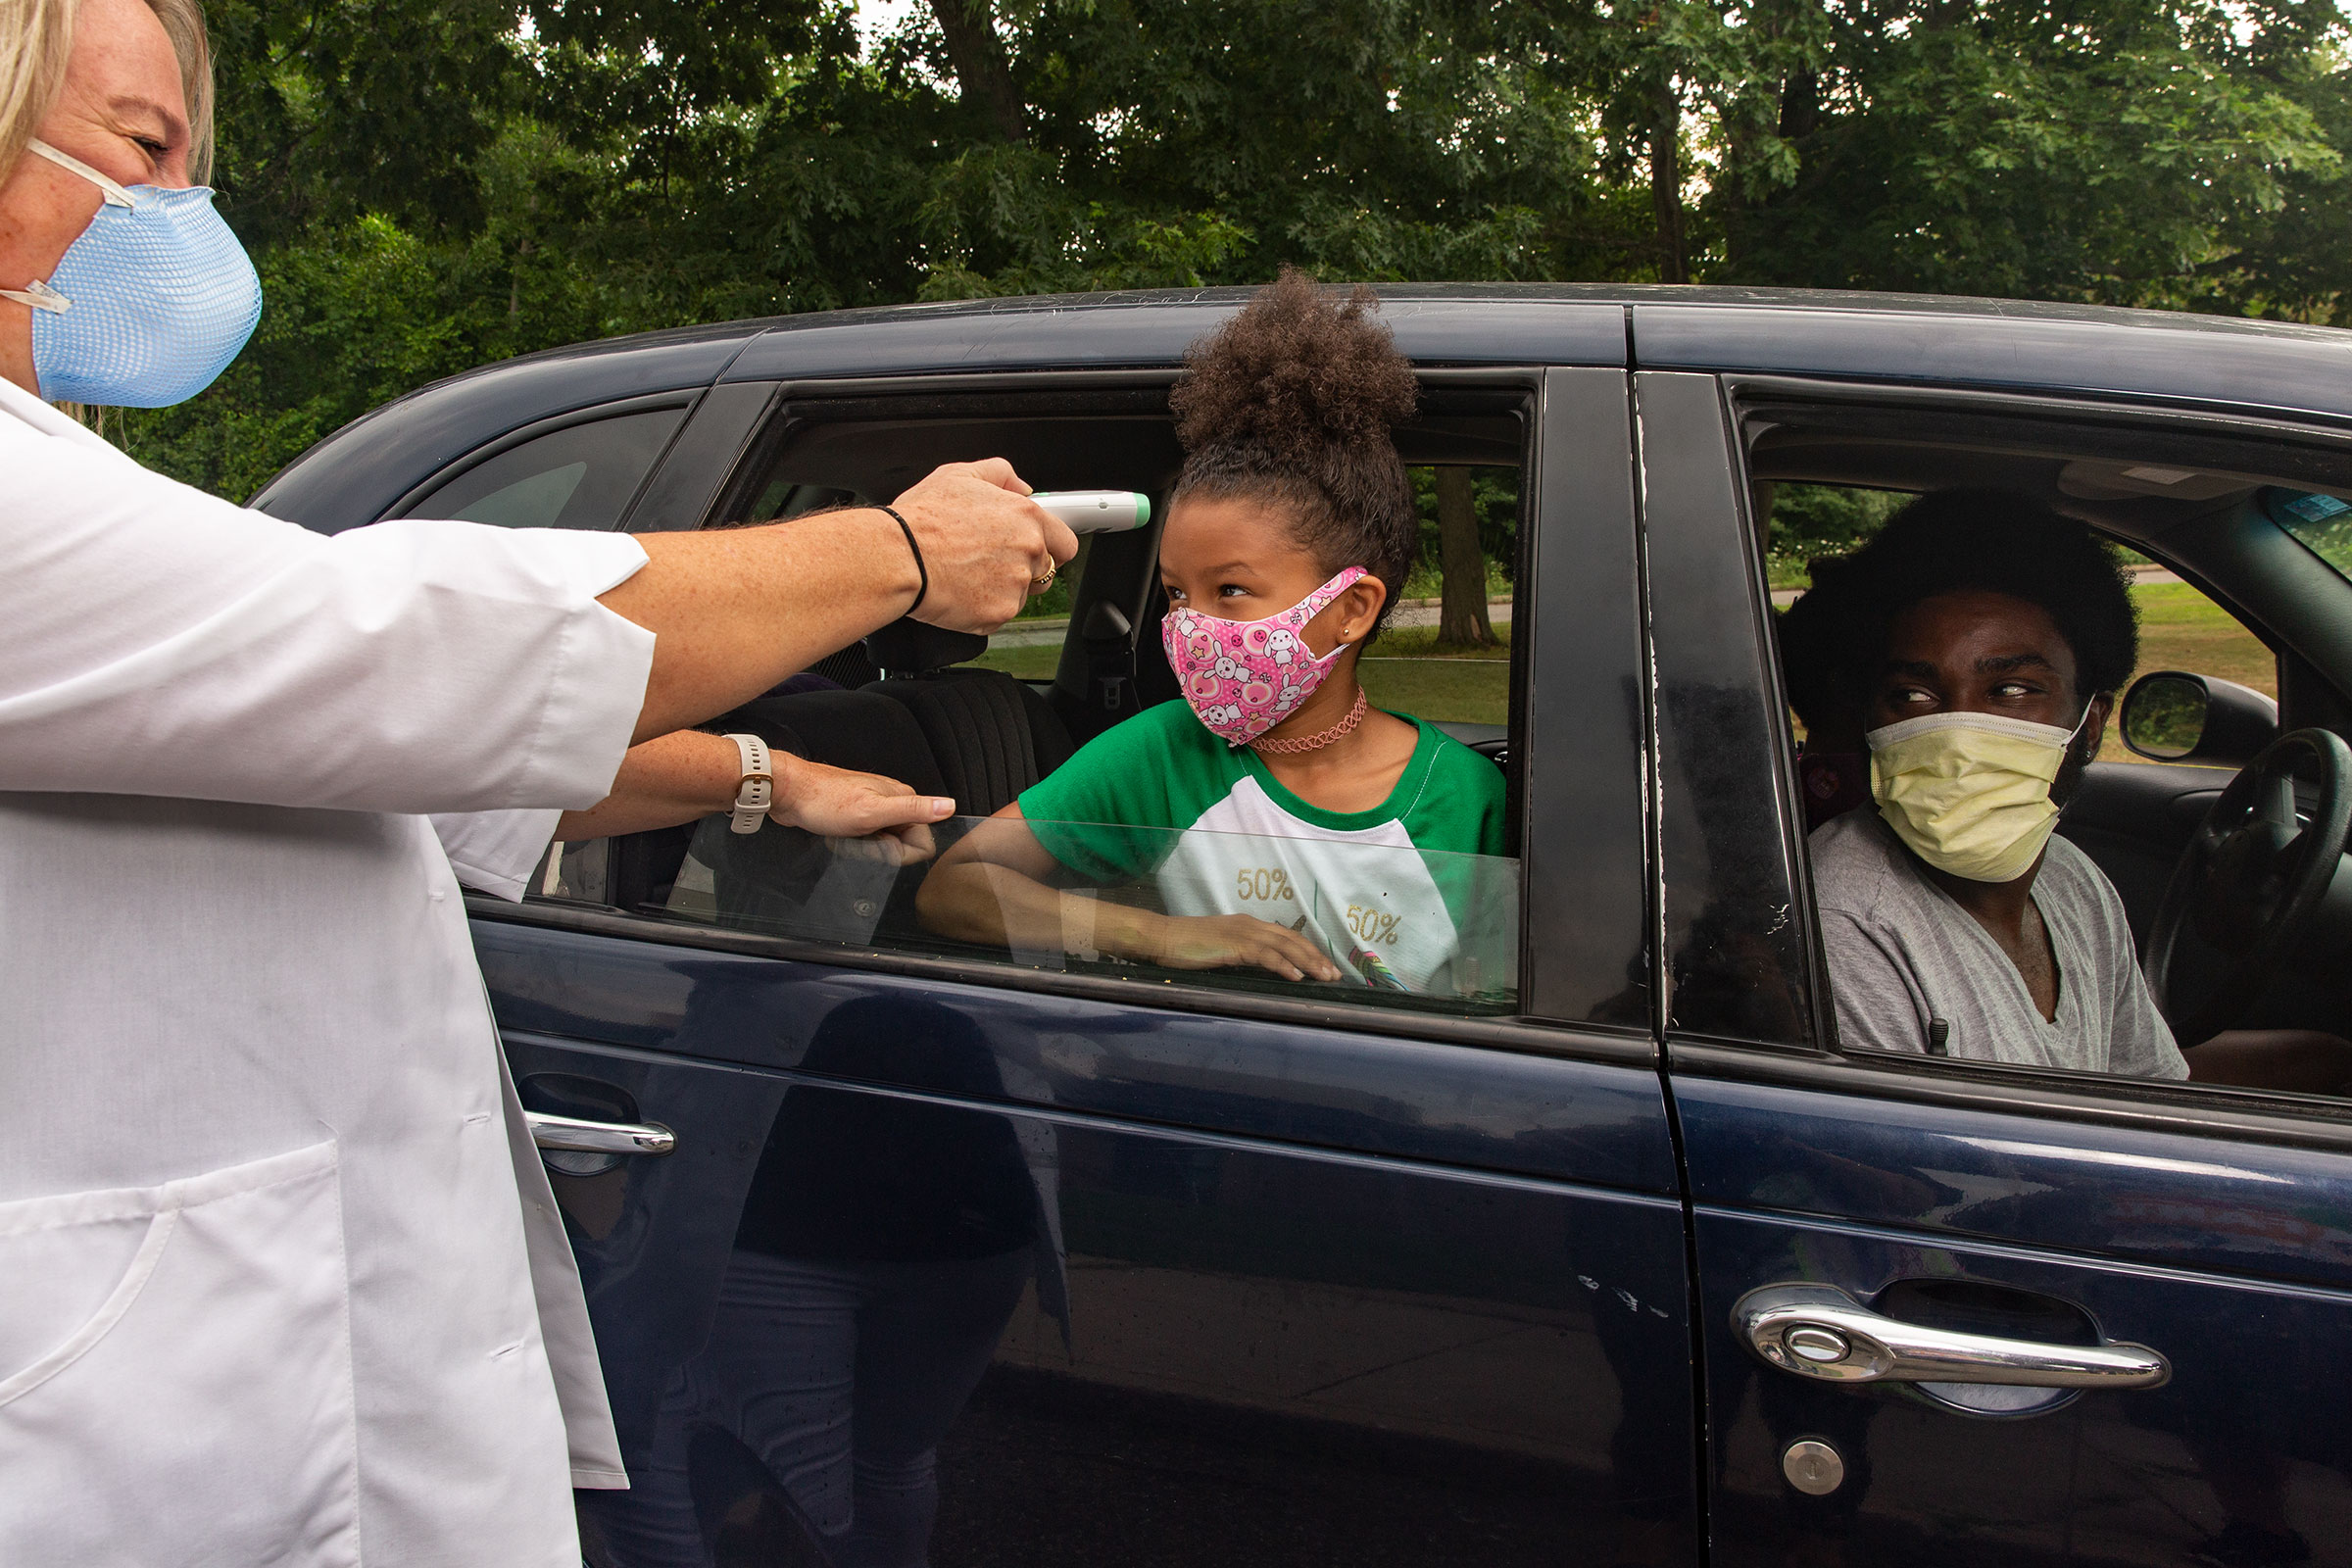 Nurse Sarah Ladd takes 5-year-old Nova Wright's temperature as she's dropped off at school